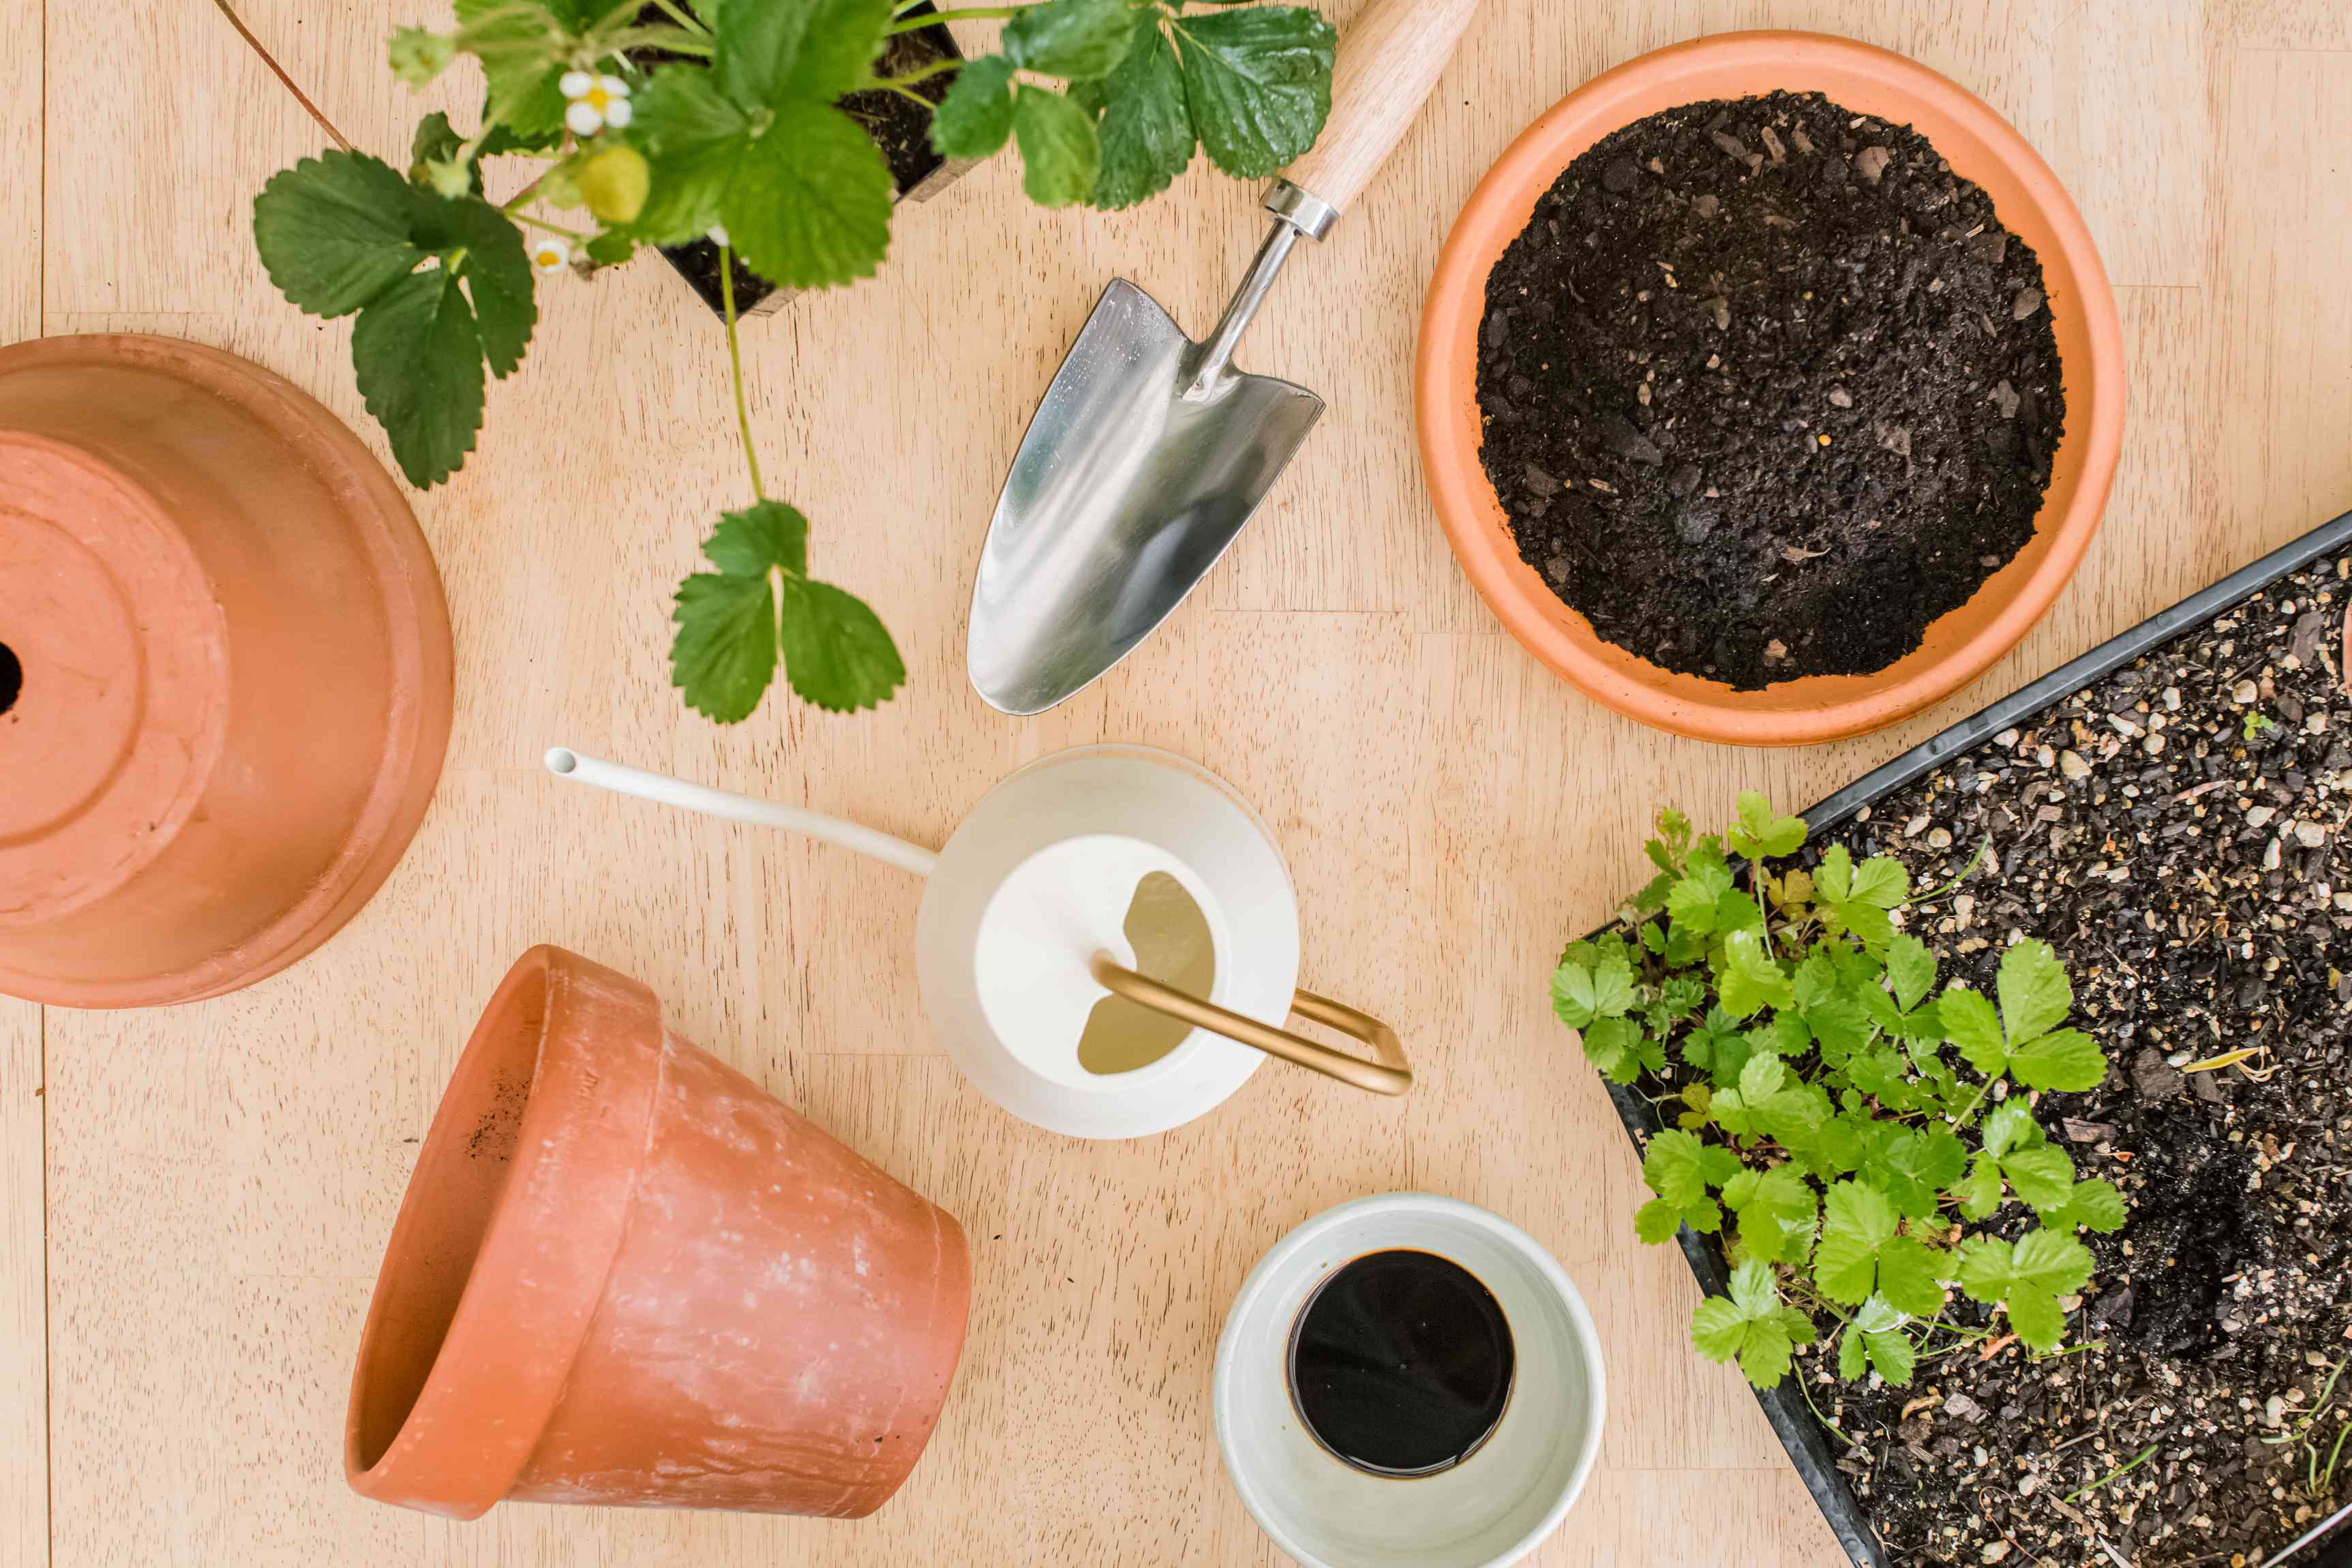 materials for planting strawberries